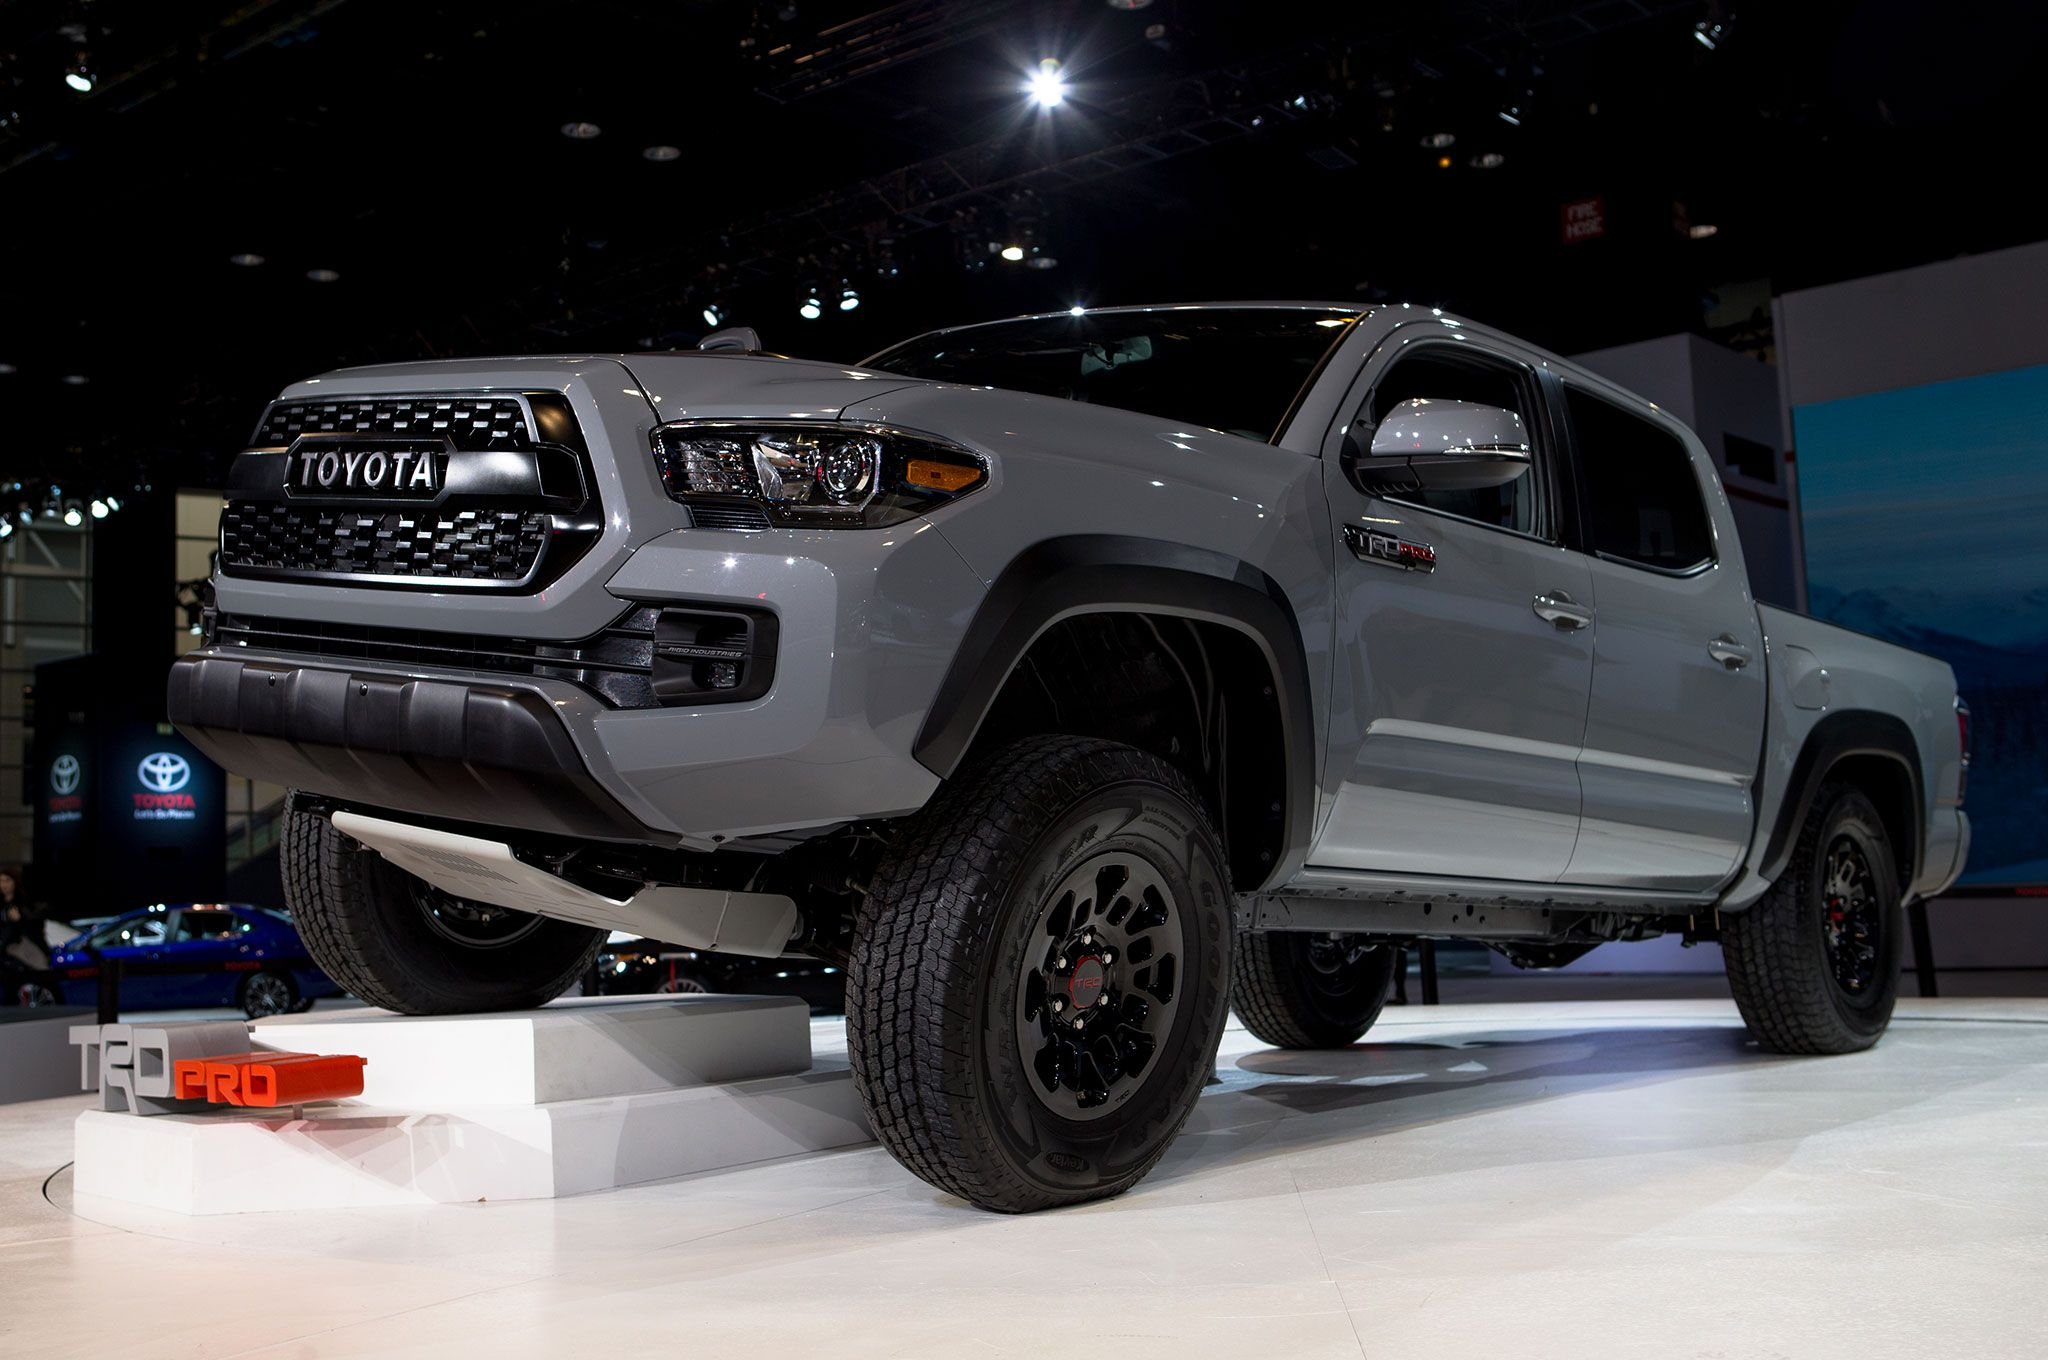 2017 Toyota Tacoma TRD Pro in Cement | Toyota of Riverside ...